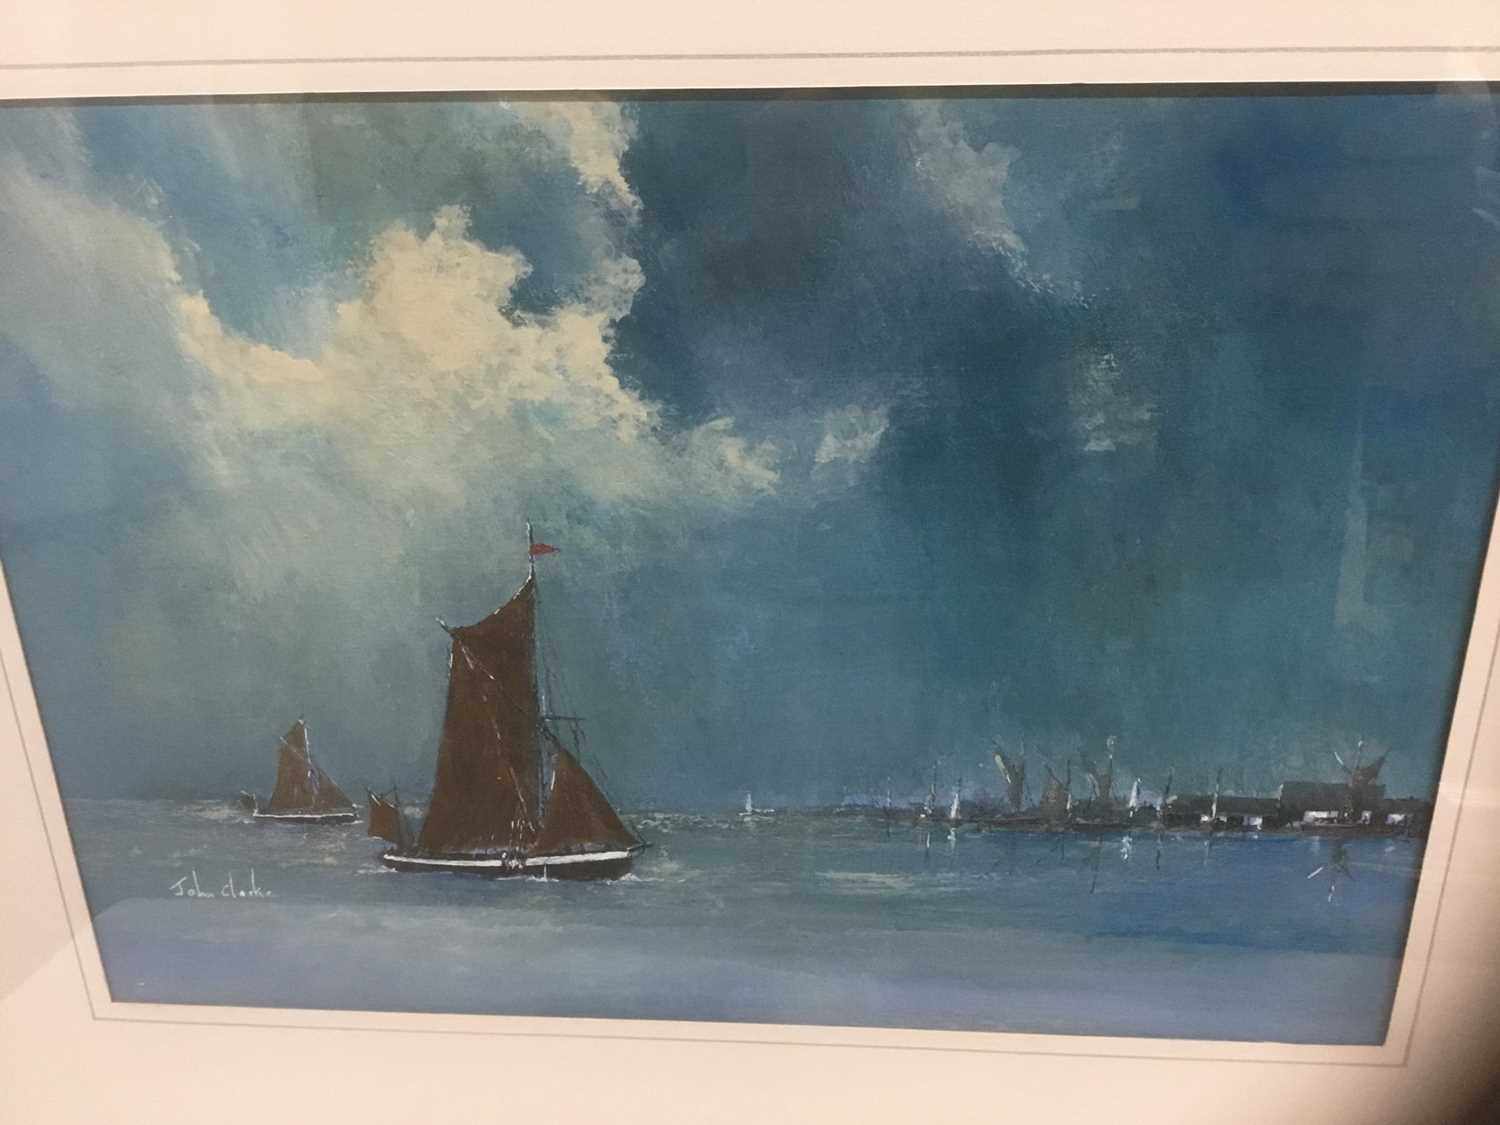 John Clarke, contemporary, oil on board - sailing barges, signed, 25cm x 36cm, in glazed frame - Image 2 of 7